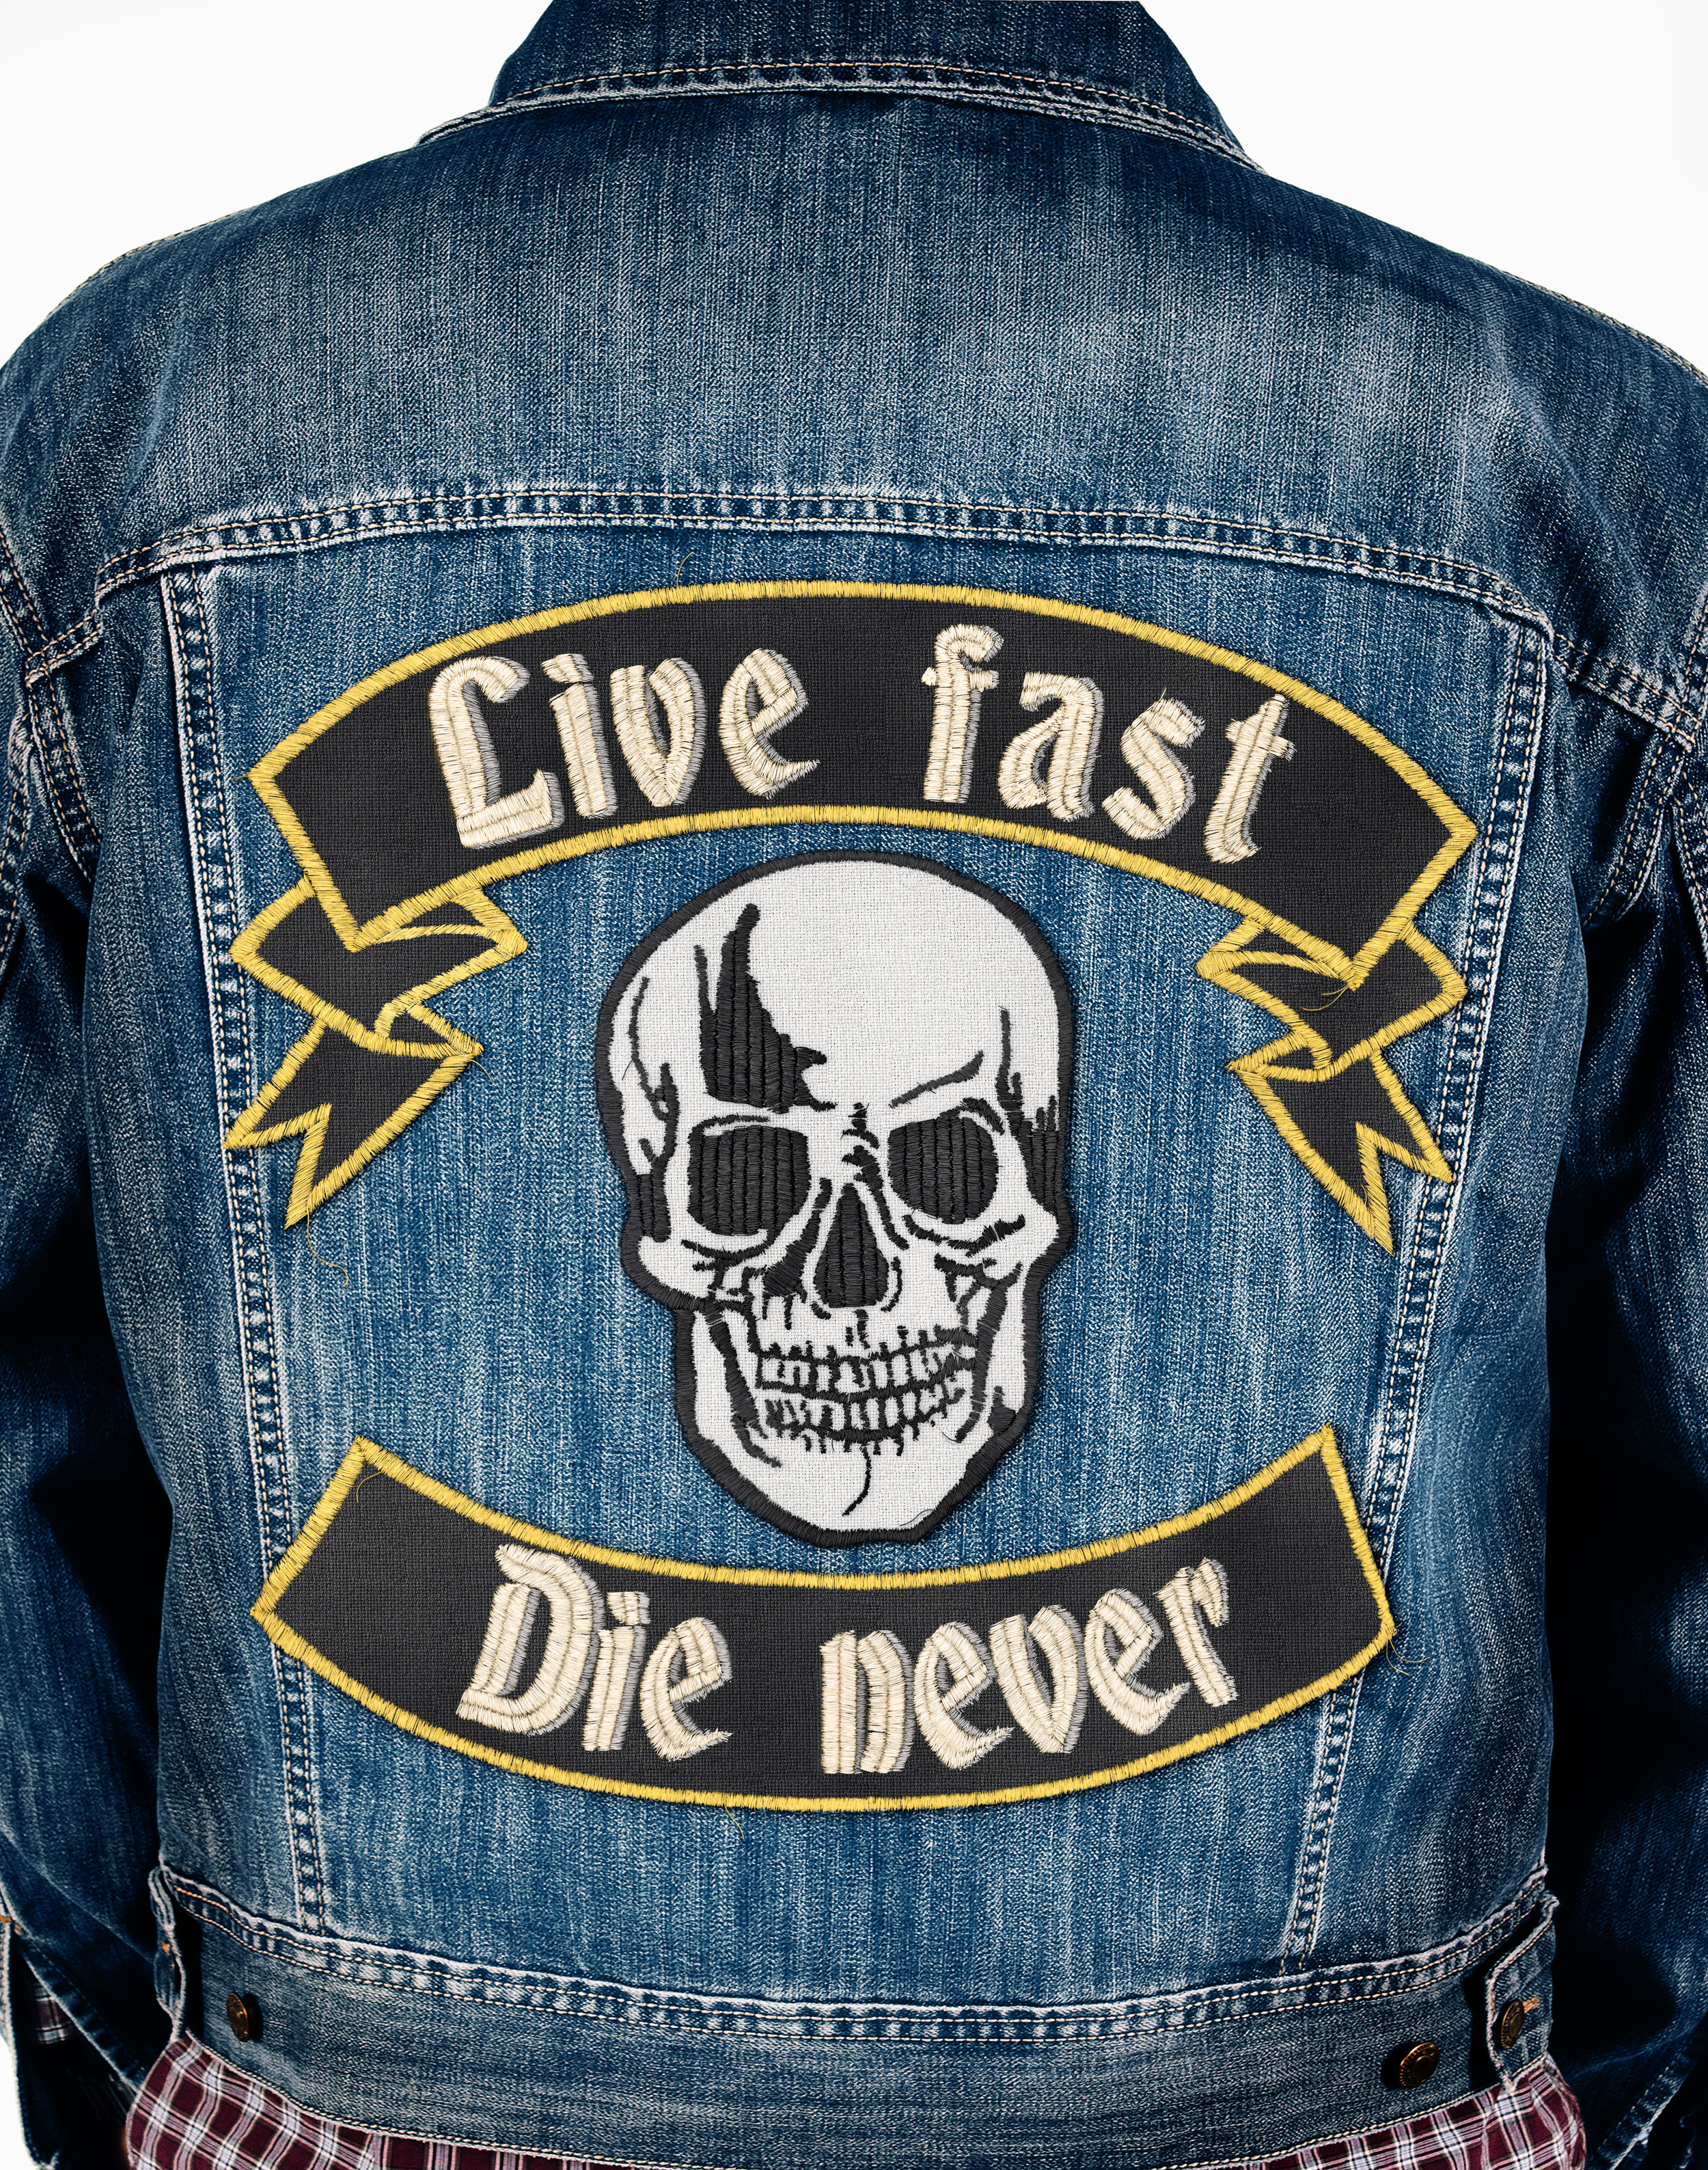 LIVE_FAST_COVER_01.jpg